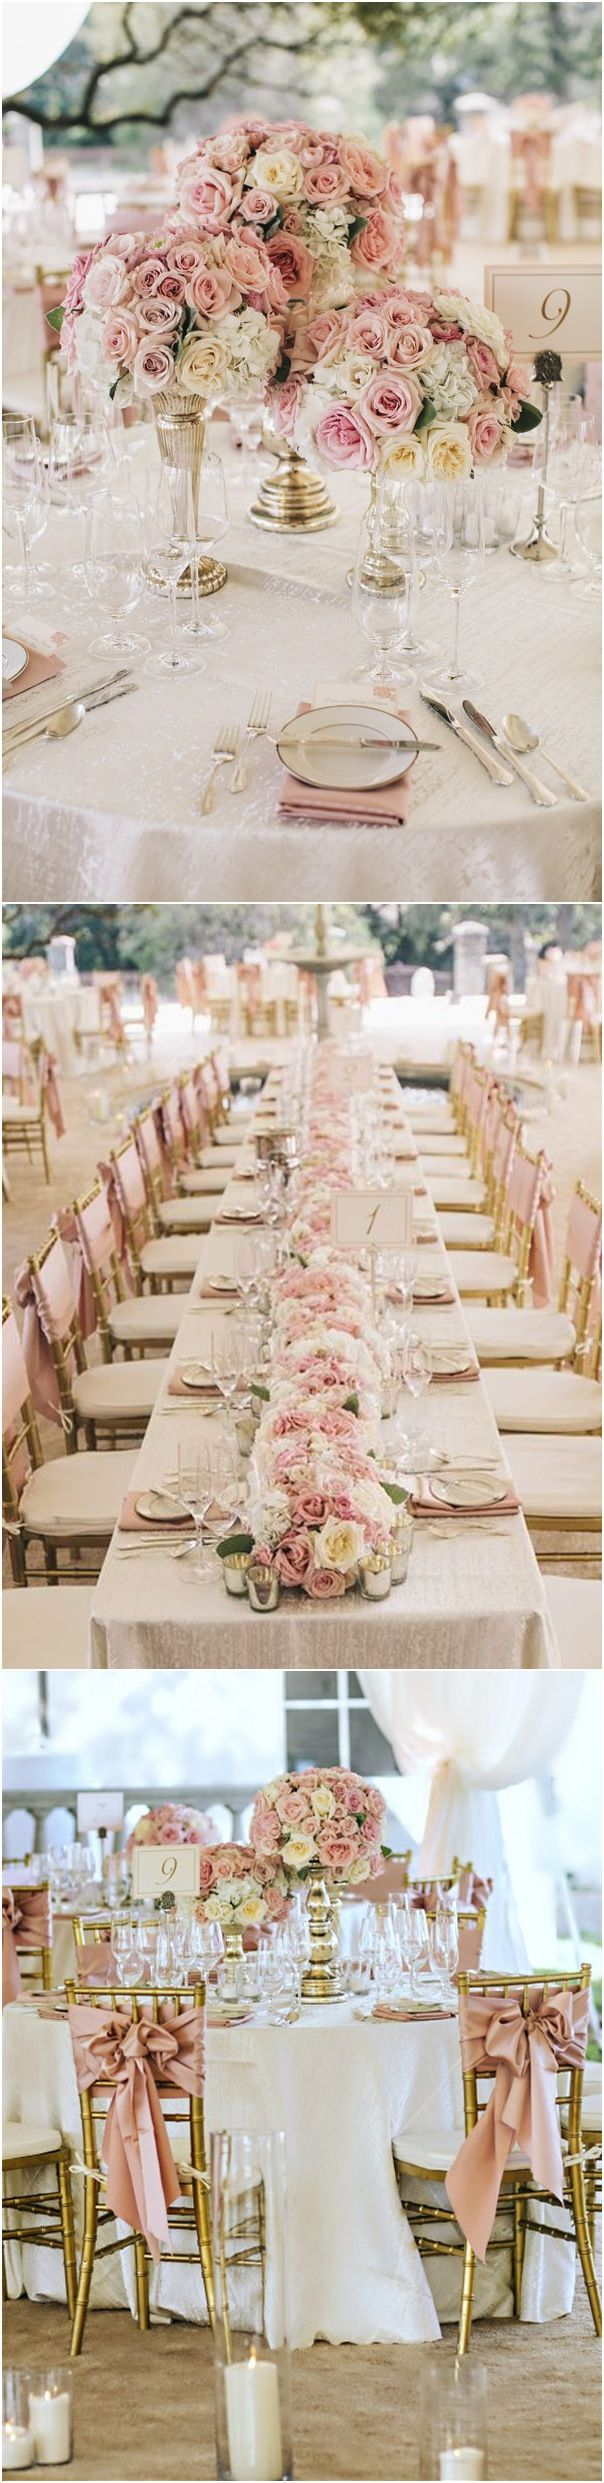 Dusty rose wedding dress  Trending Dusty Rose Wedding Color Ideas for   Page  of